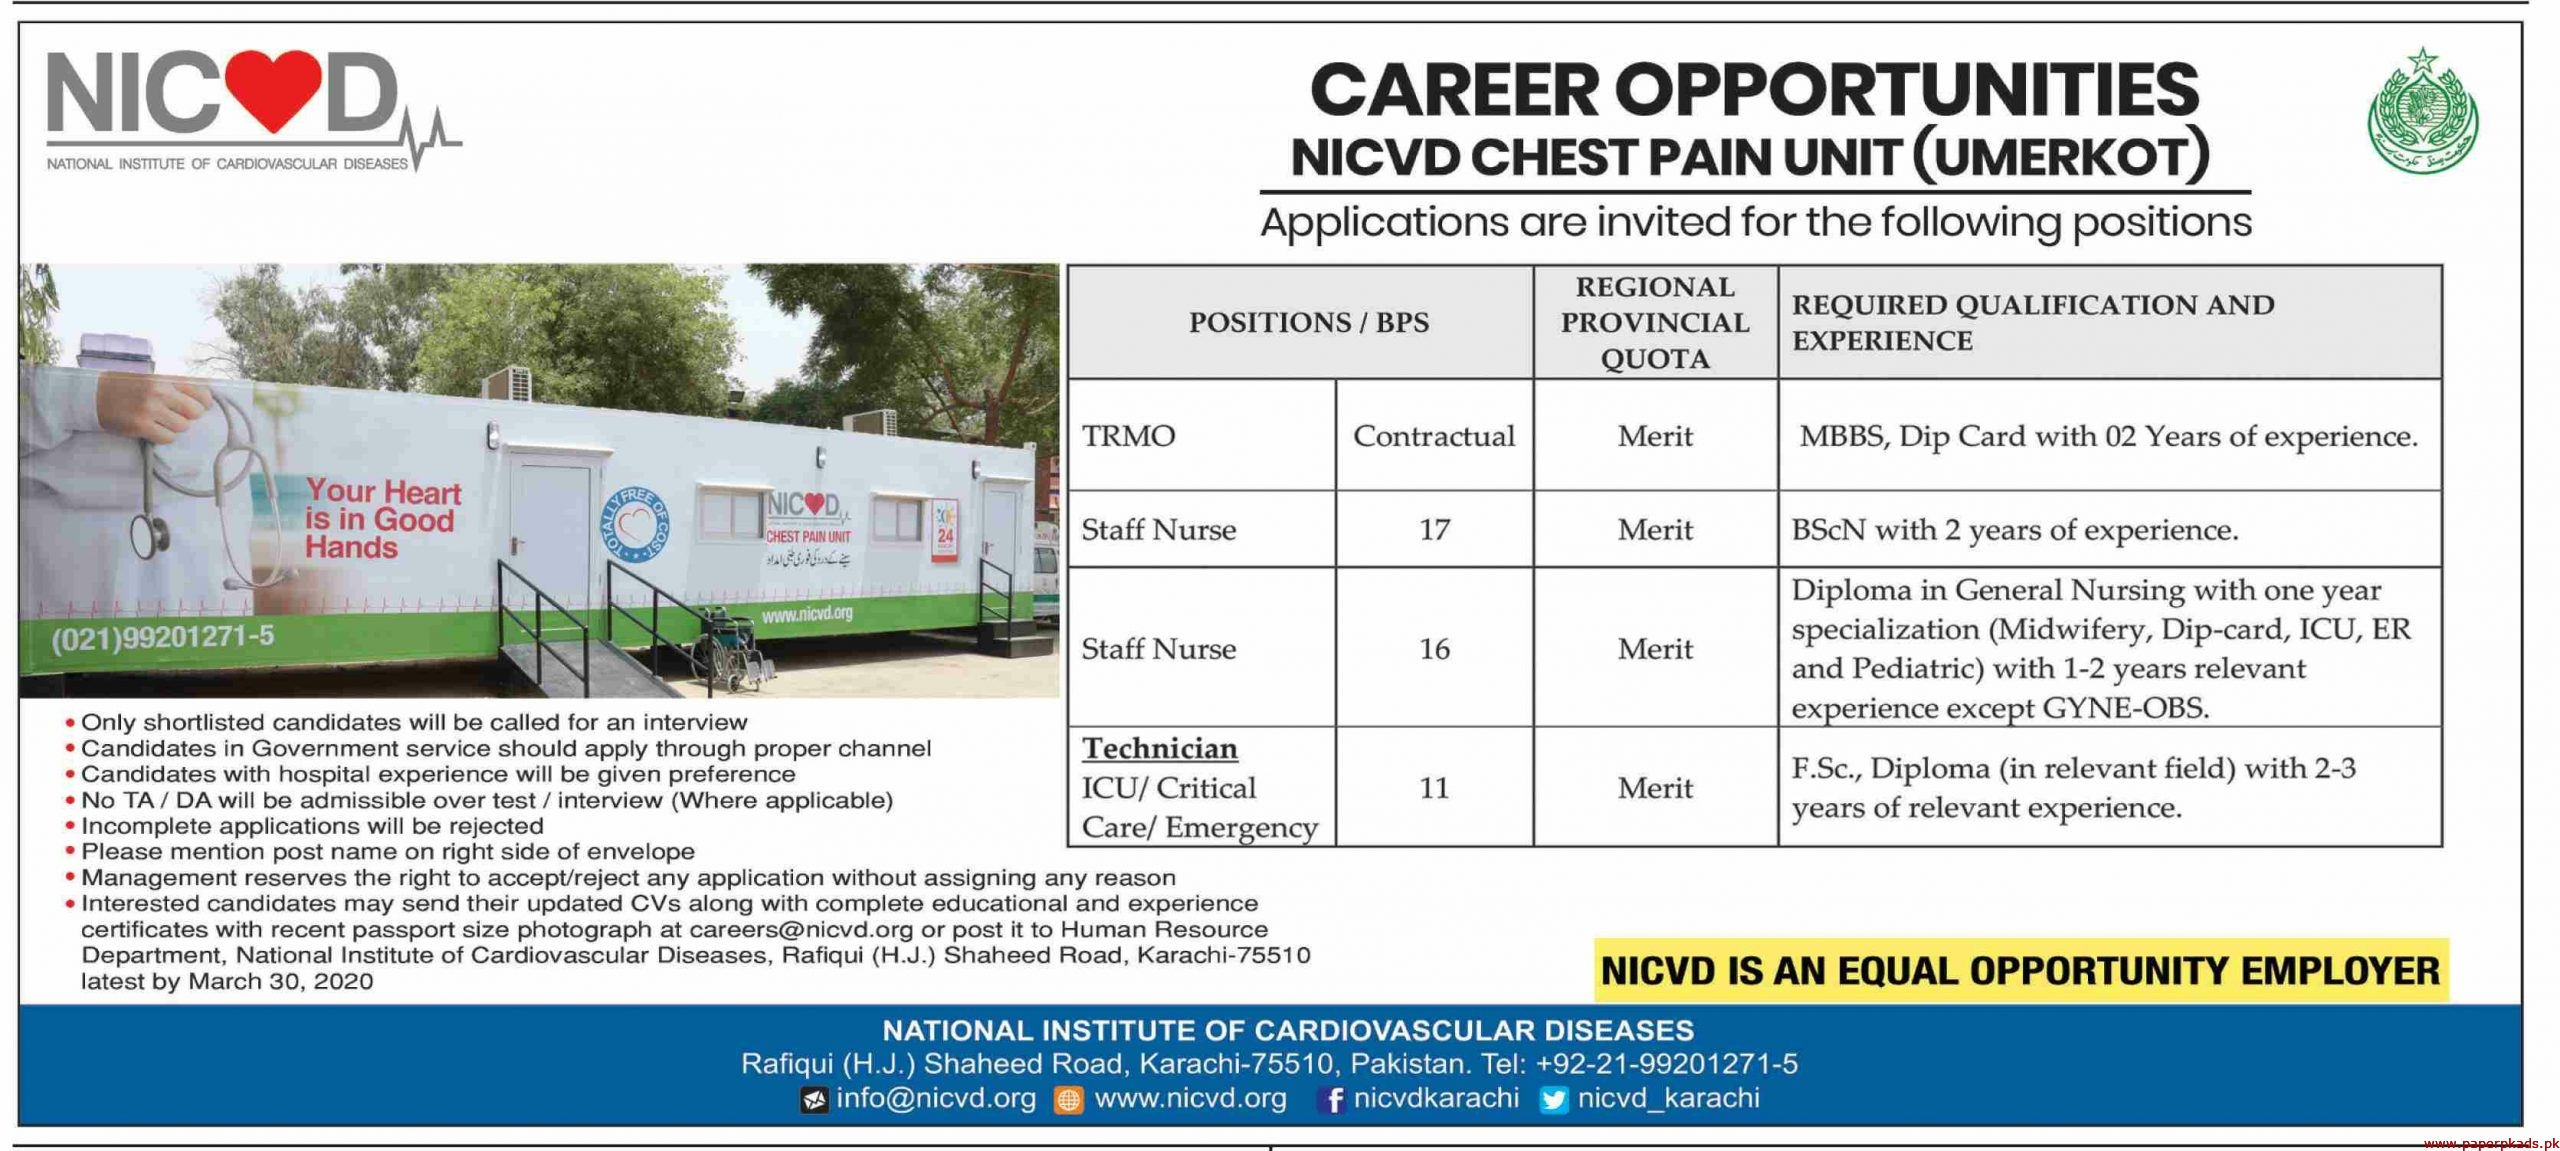 NICVD National Institute of Cardiovascular Diseases Jobs 2020 Latest